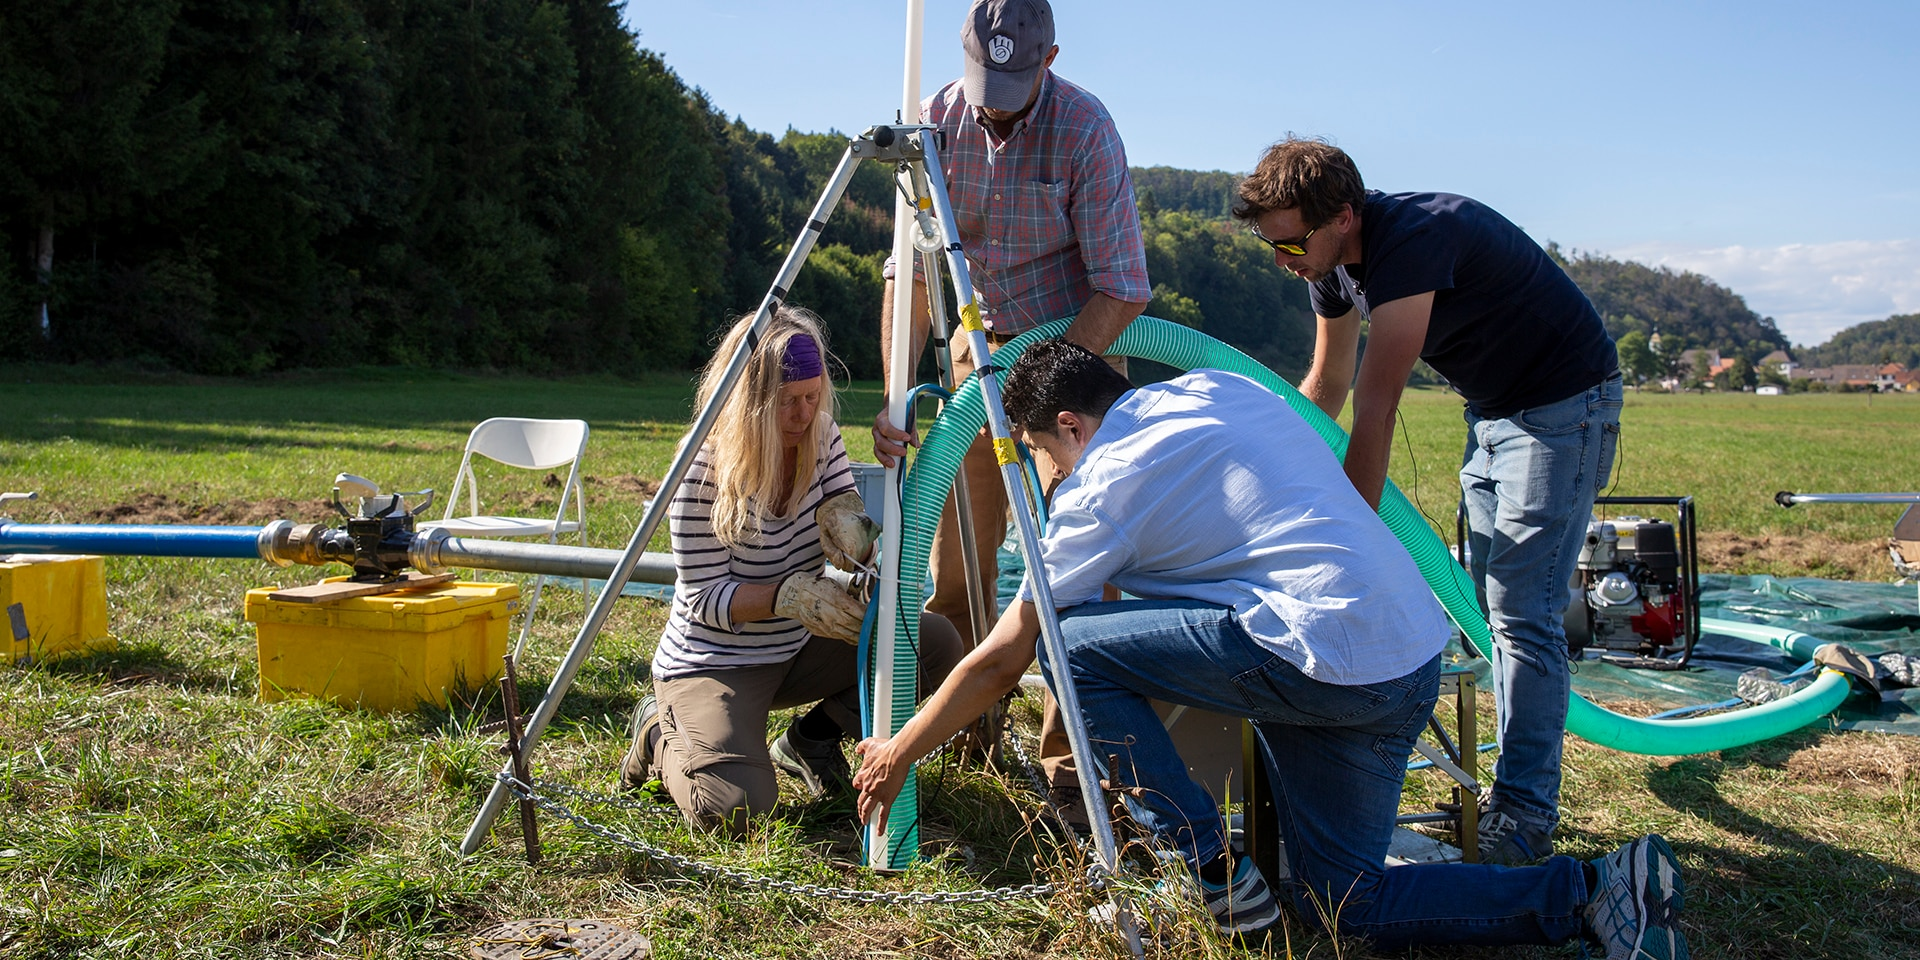 On a meadow, four experts from the Swiss Humanitarian Aid Unit are laying a water pipe in a hole in the ground.